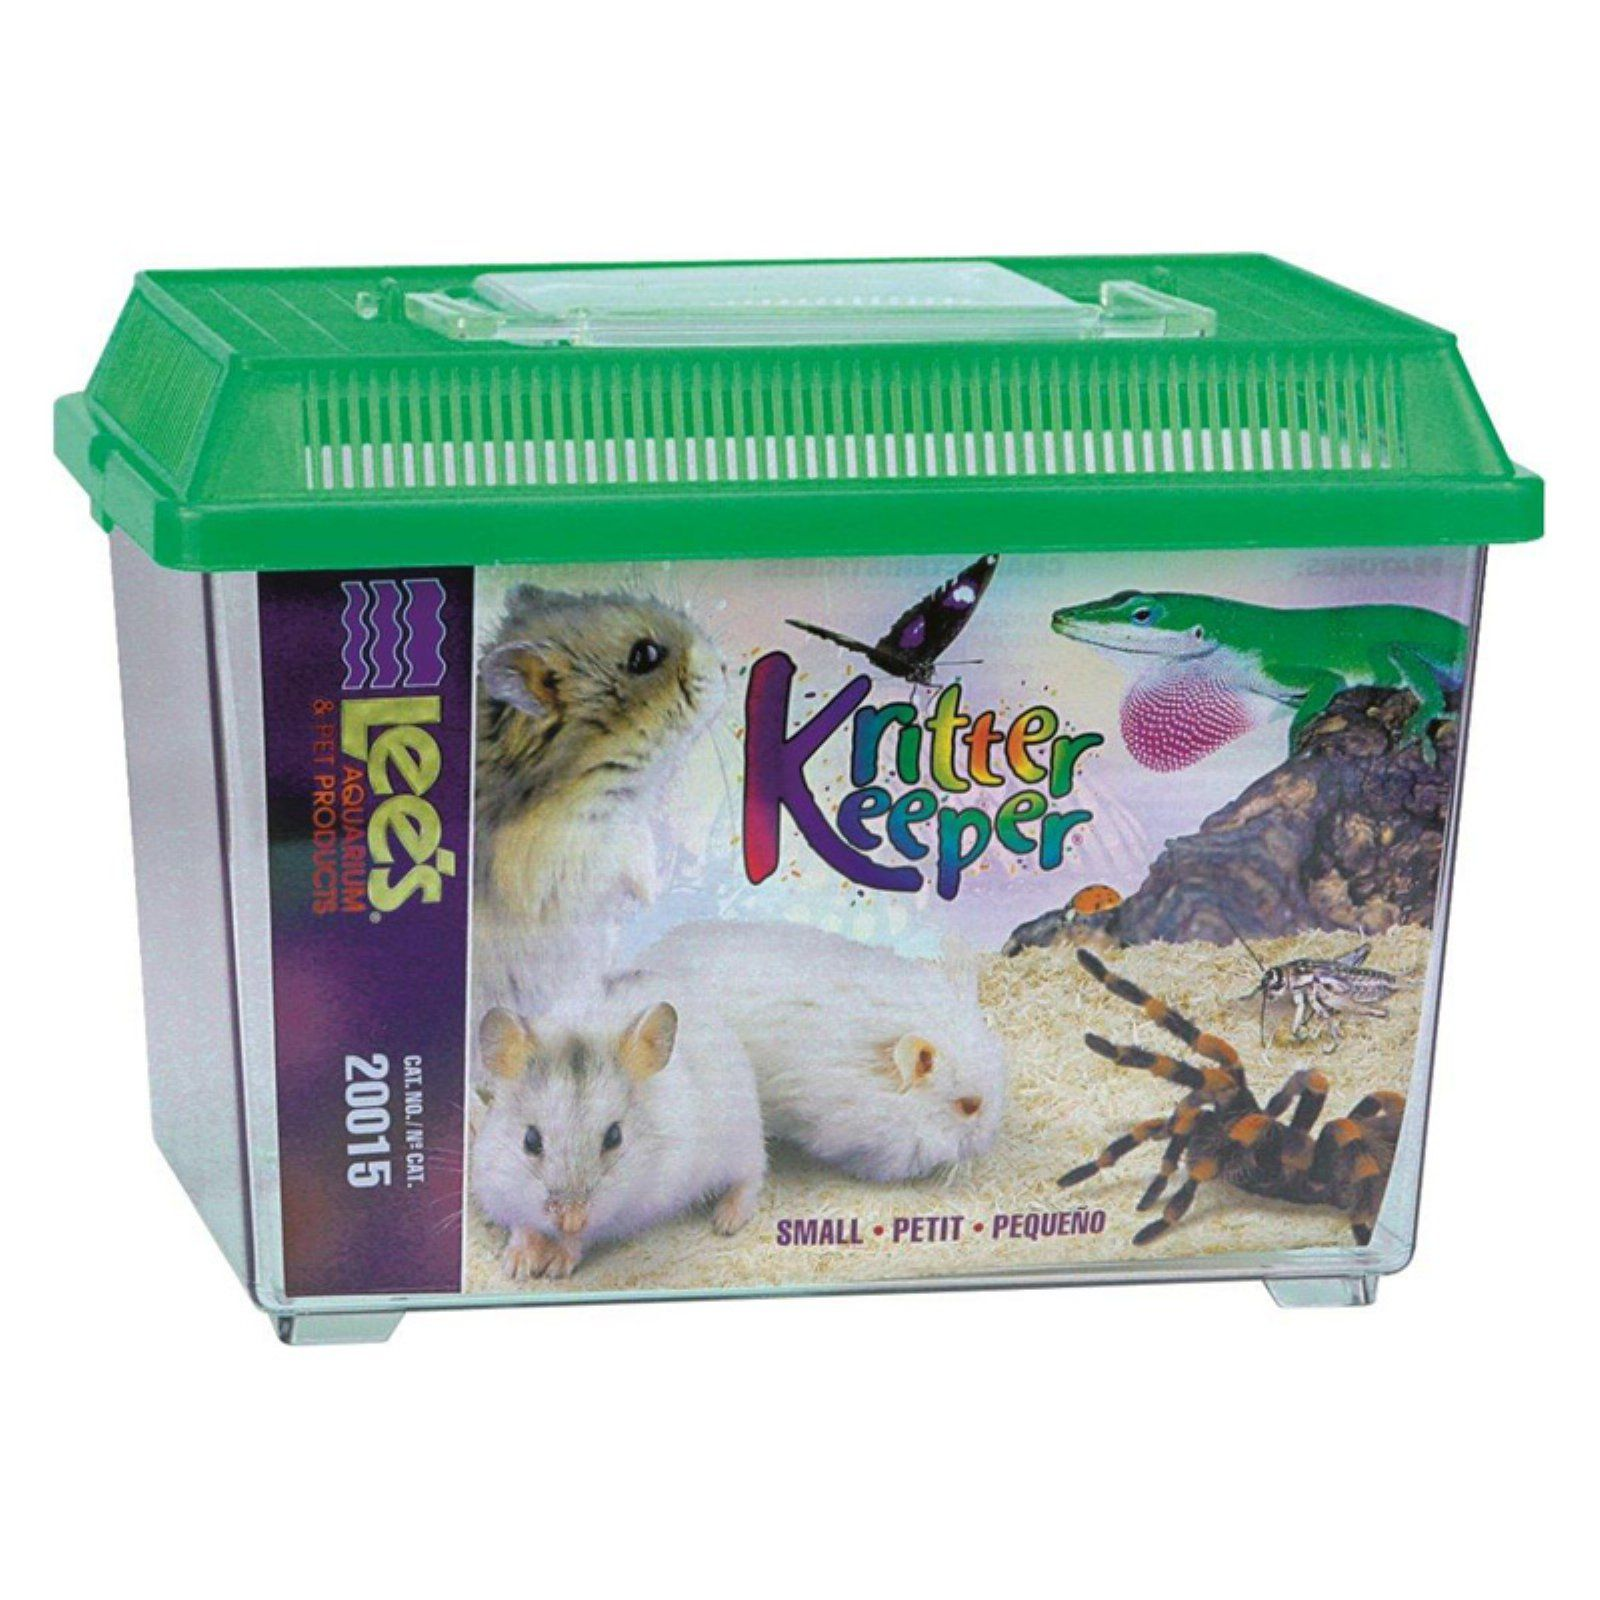 Lee S Aquarium Kritter Keeper Small Pets